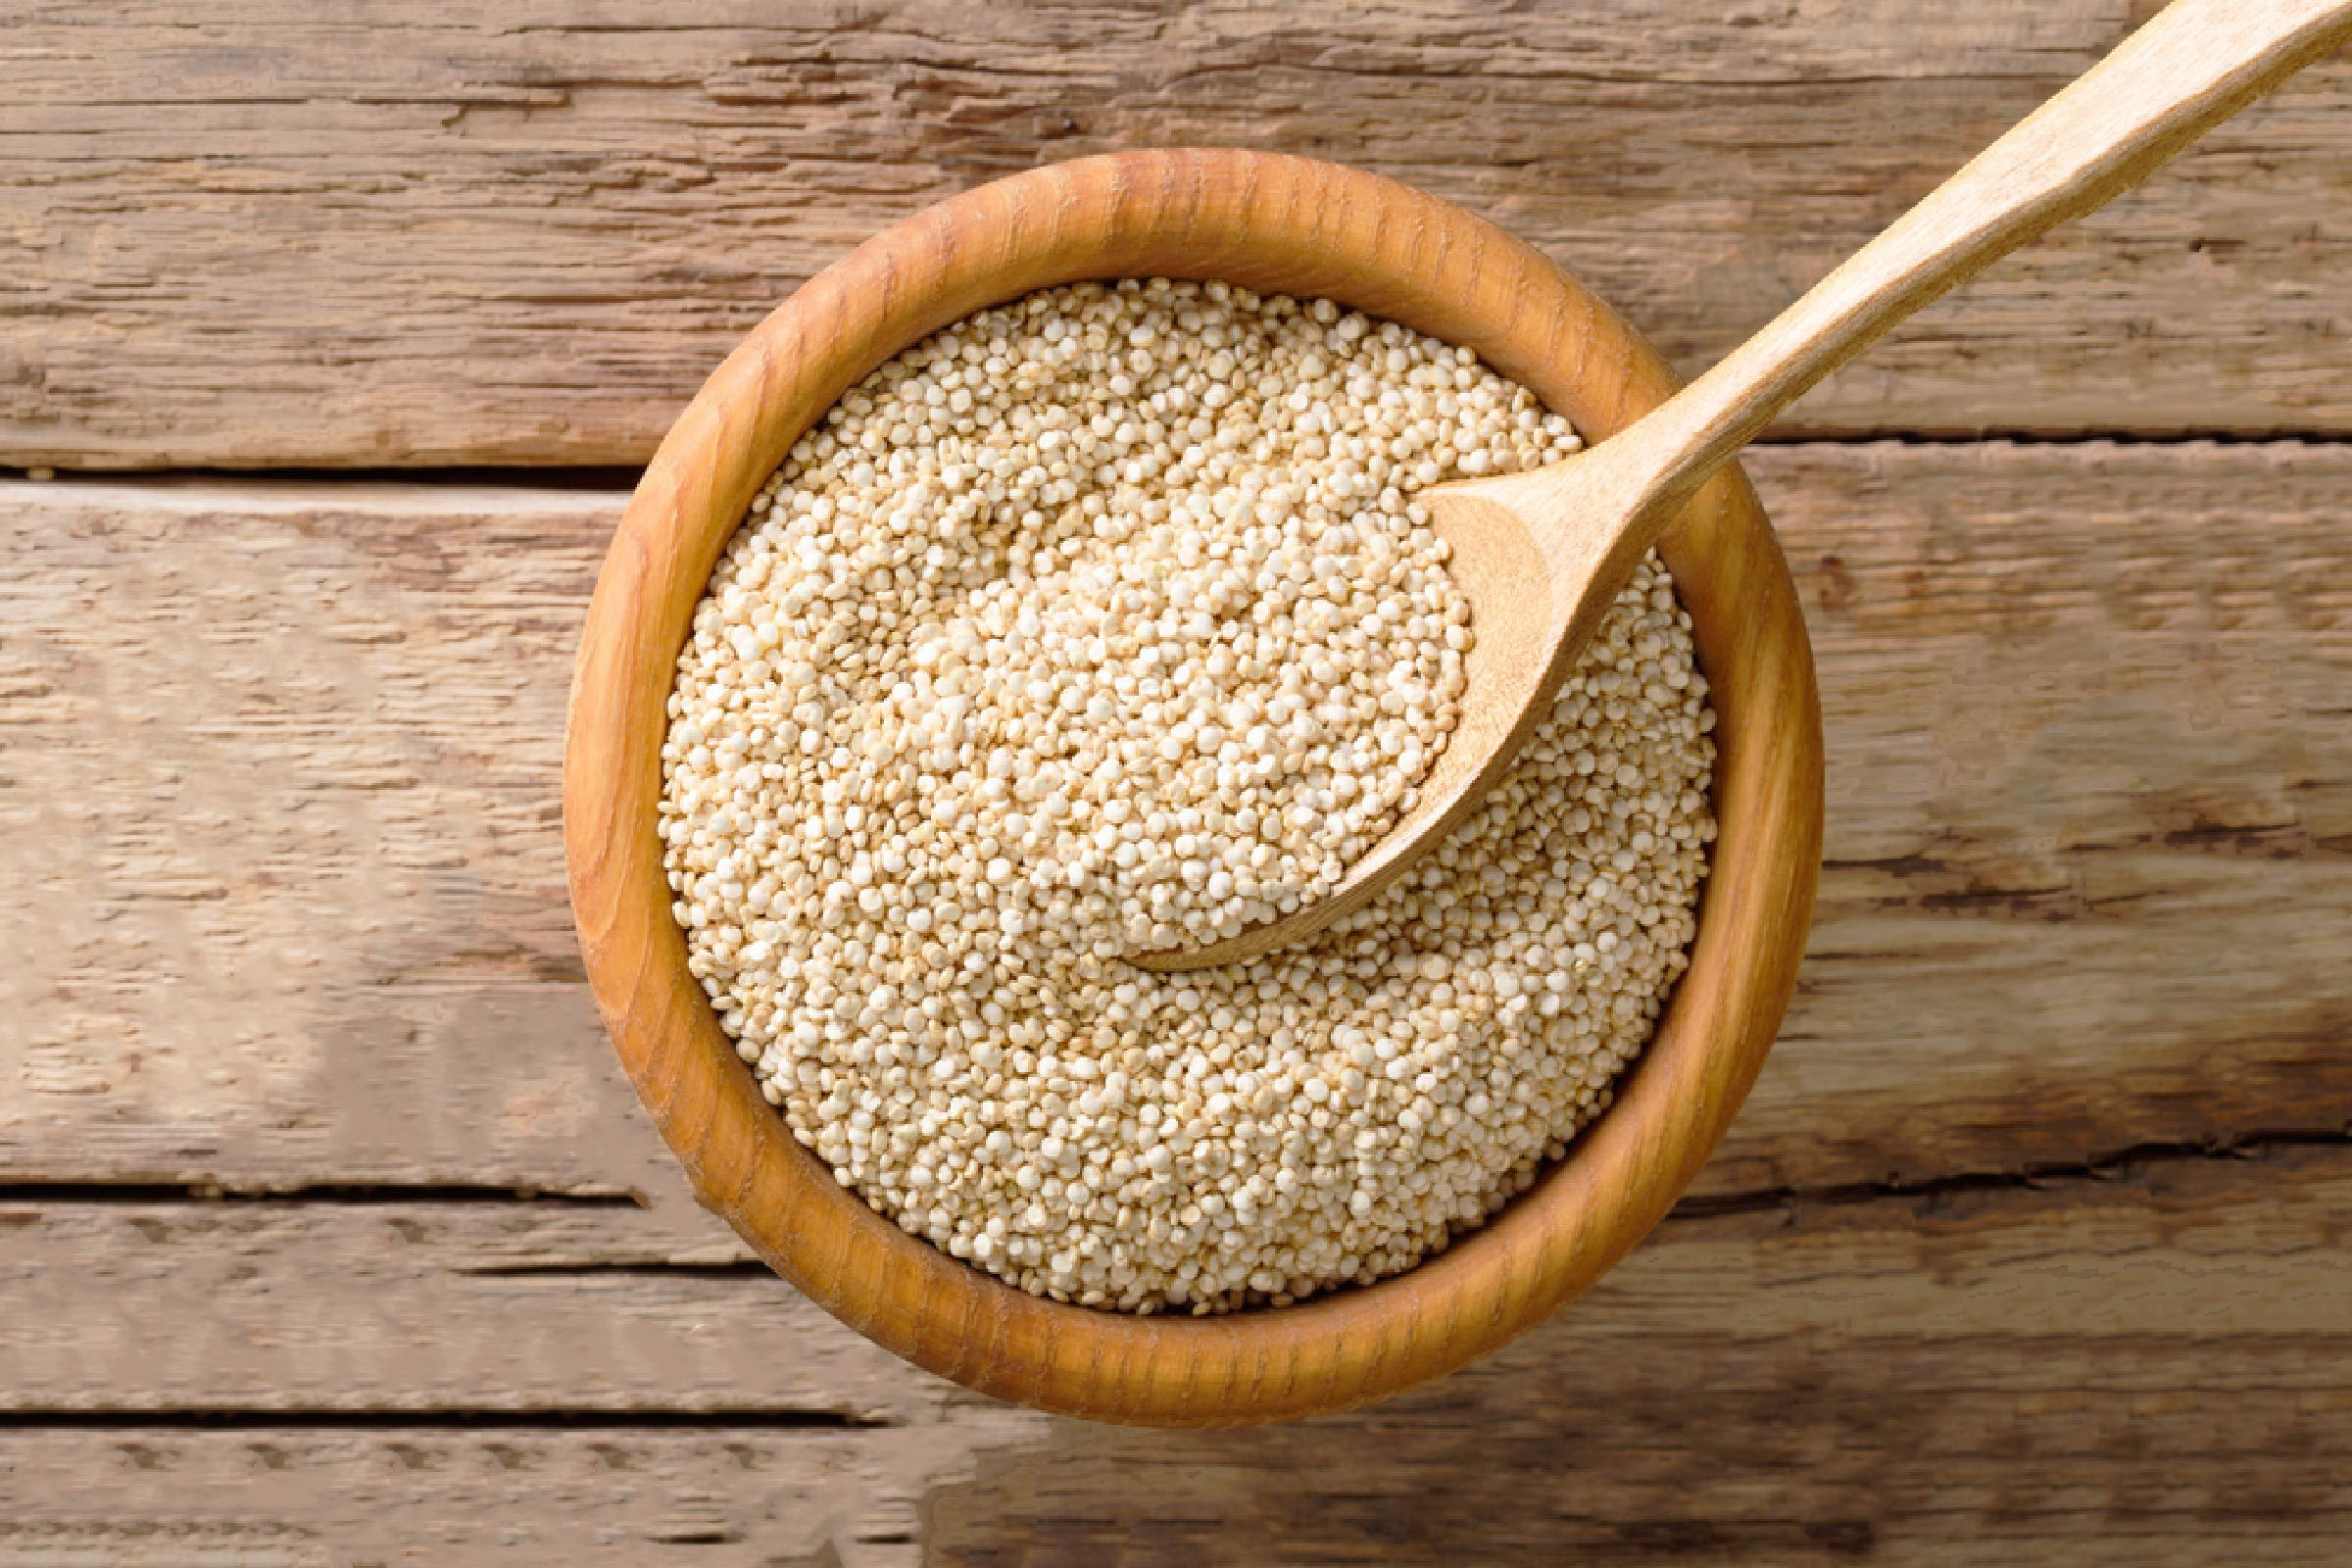 Raw quinoa close up in a wooden bowl on the table. top view from above horizontal background